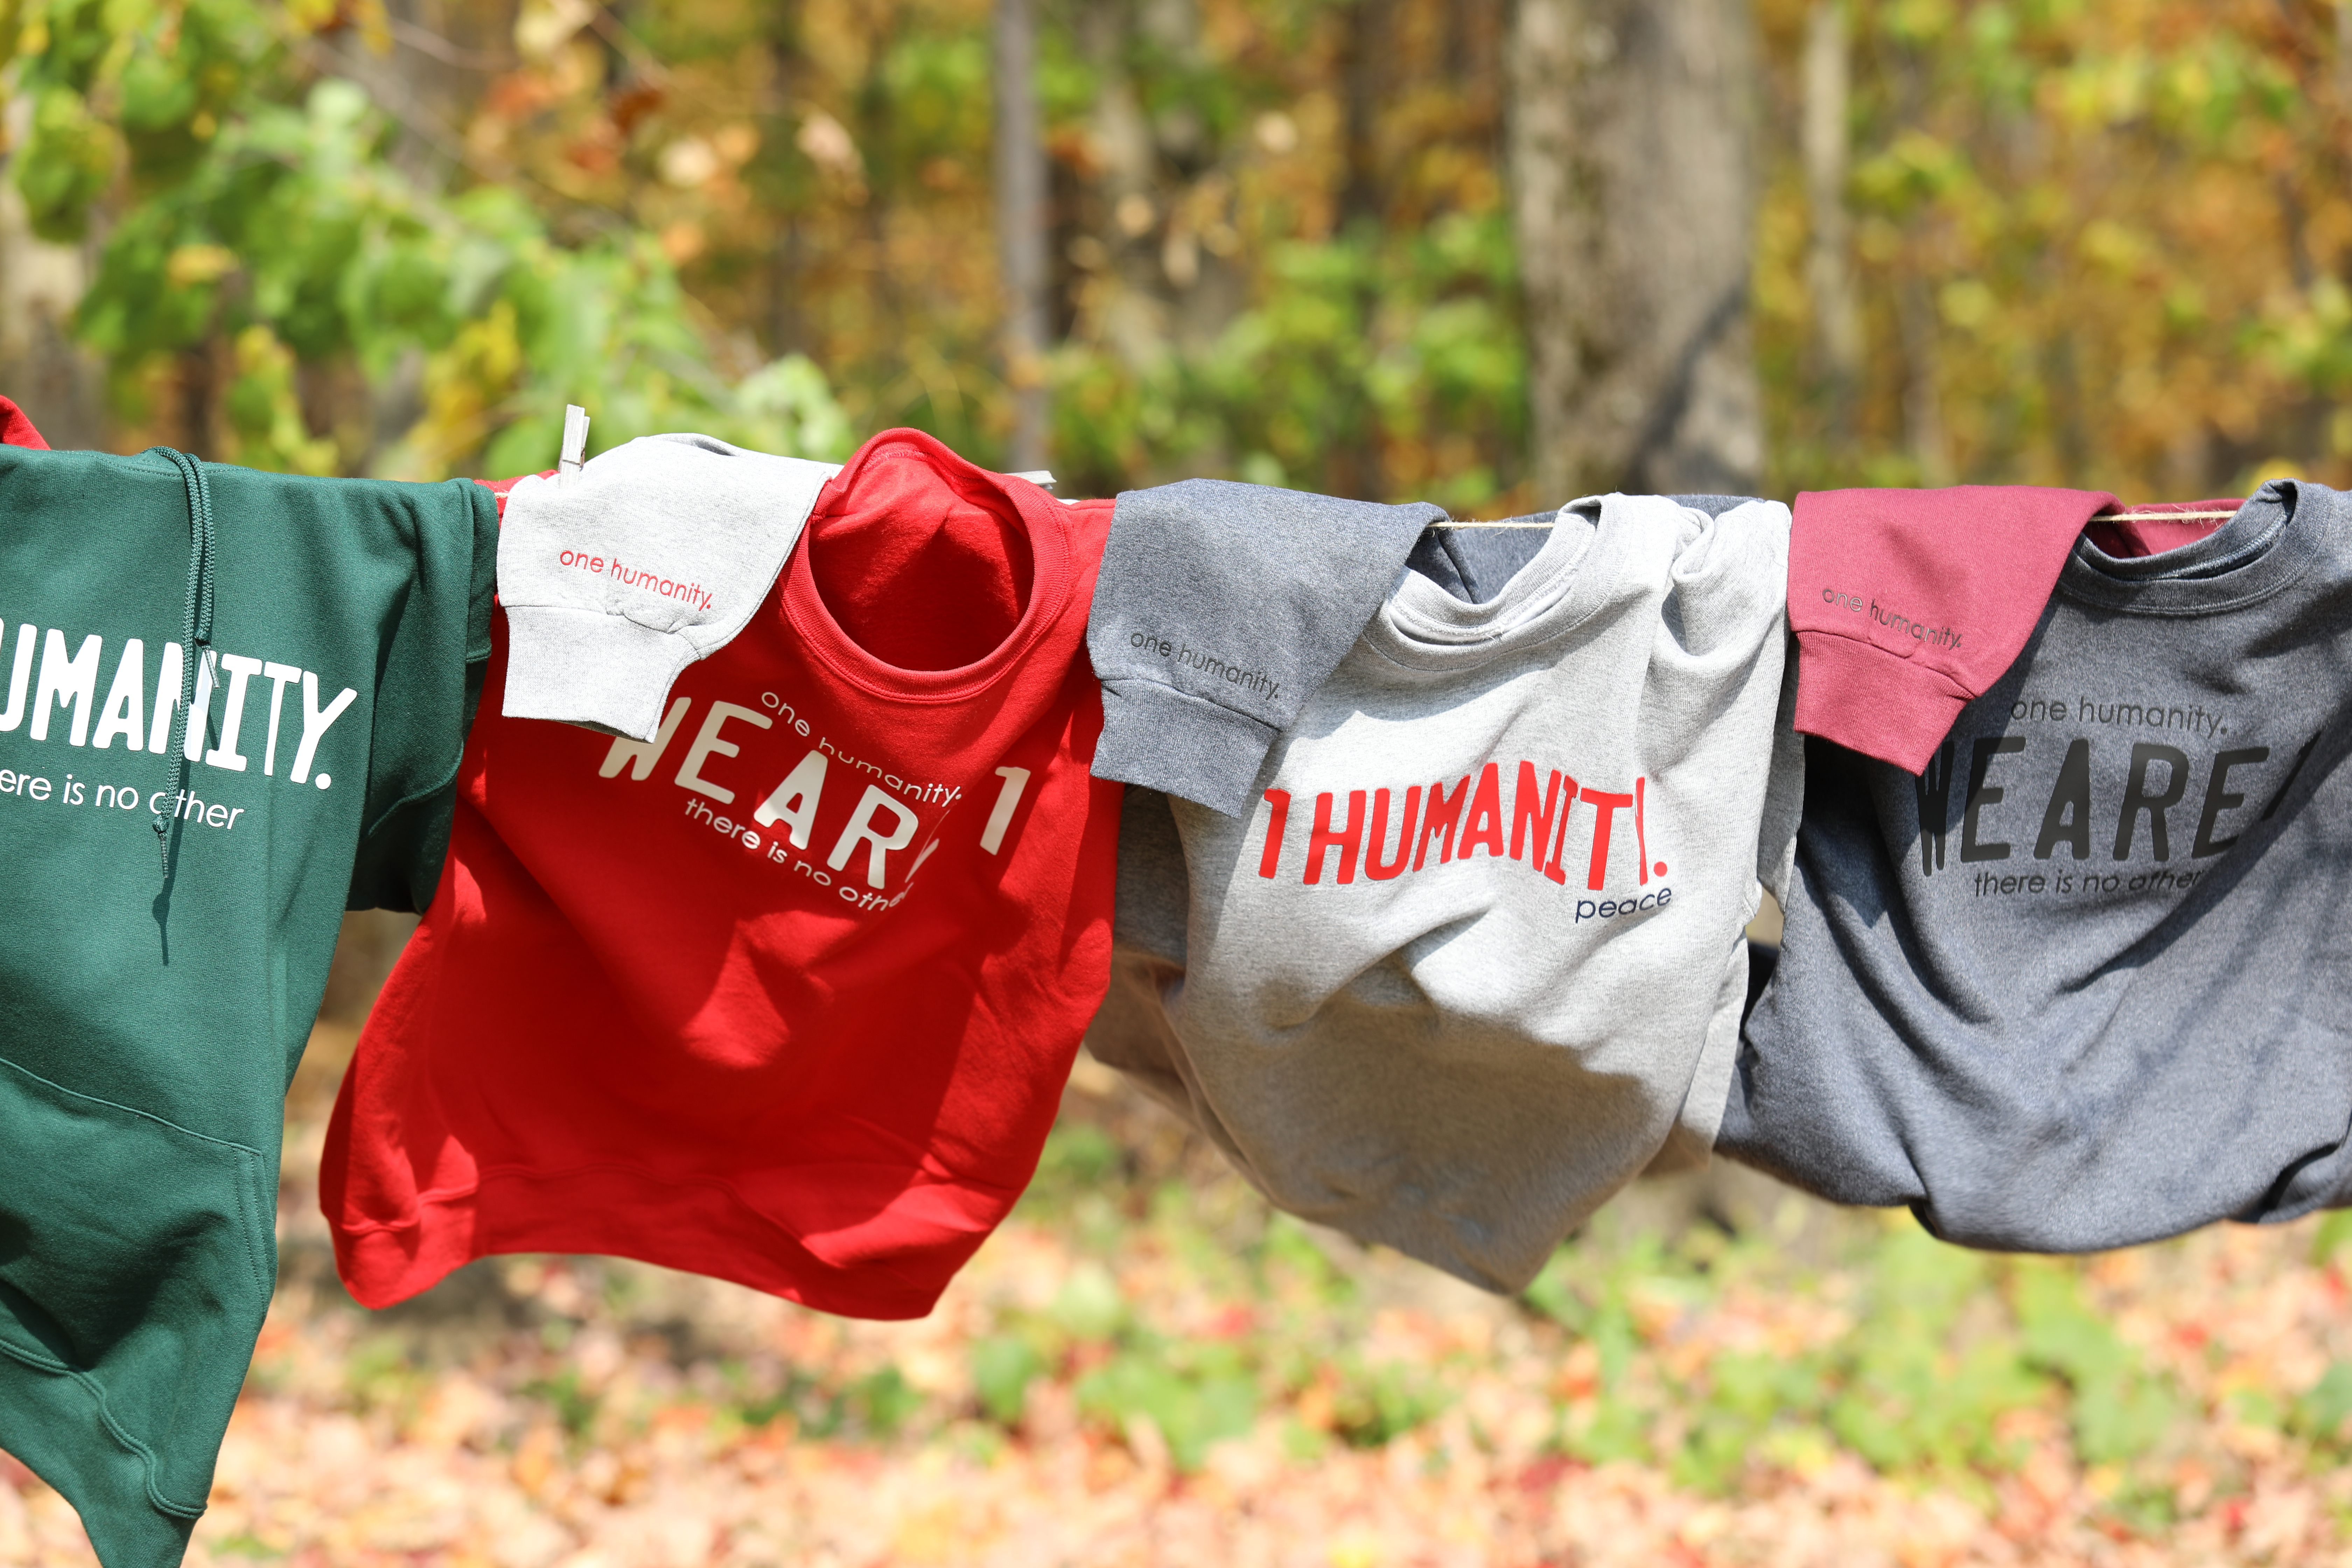 Gifts with social purpose